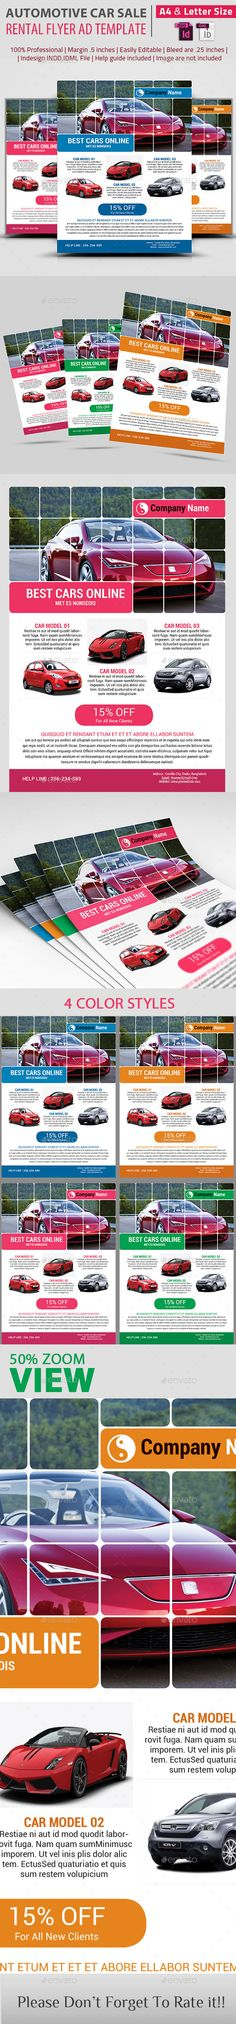 Car Show Flyer Template Zokidesign Cars Pinterest Flyer - car for sale template word